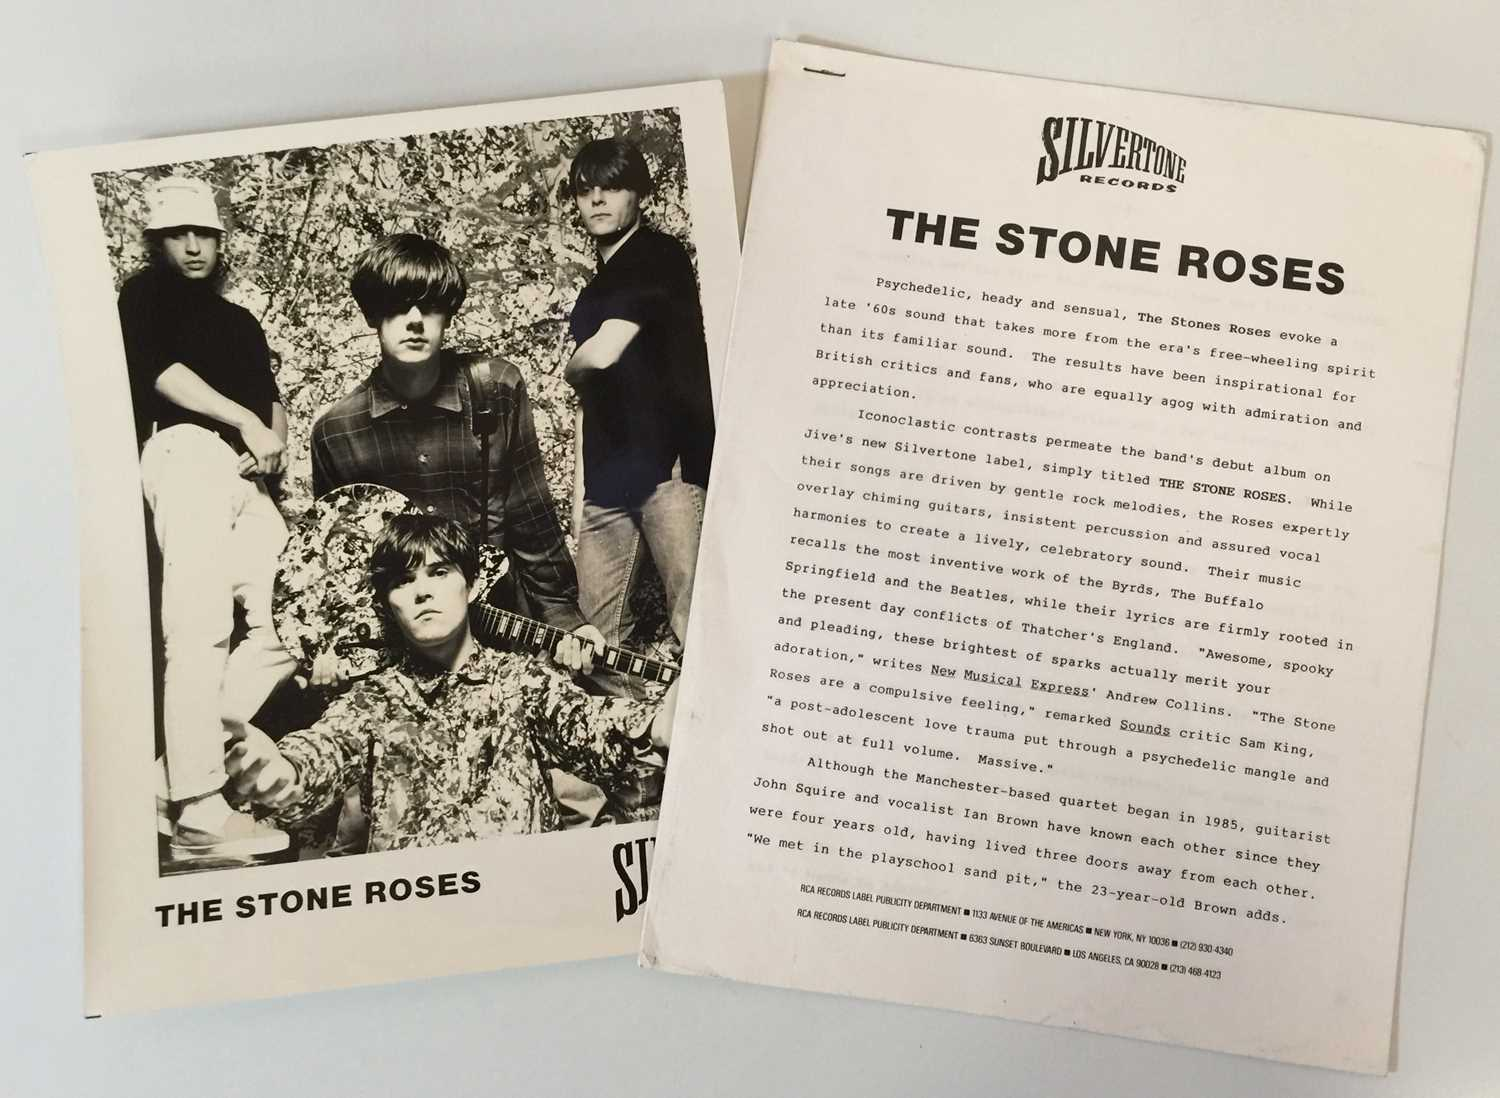 THE STONE ROSES - THE STONE ROSES LP (COMPLETE OG US COPY WITH PRESS RELEASE - SILVERTONE 1184-1-J) - Image 6 of 6